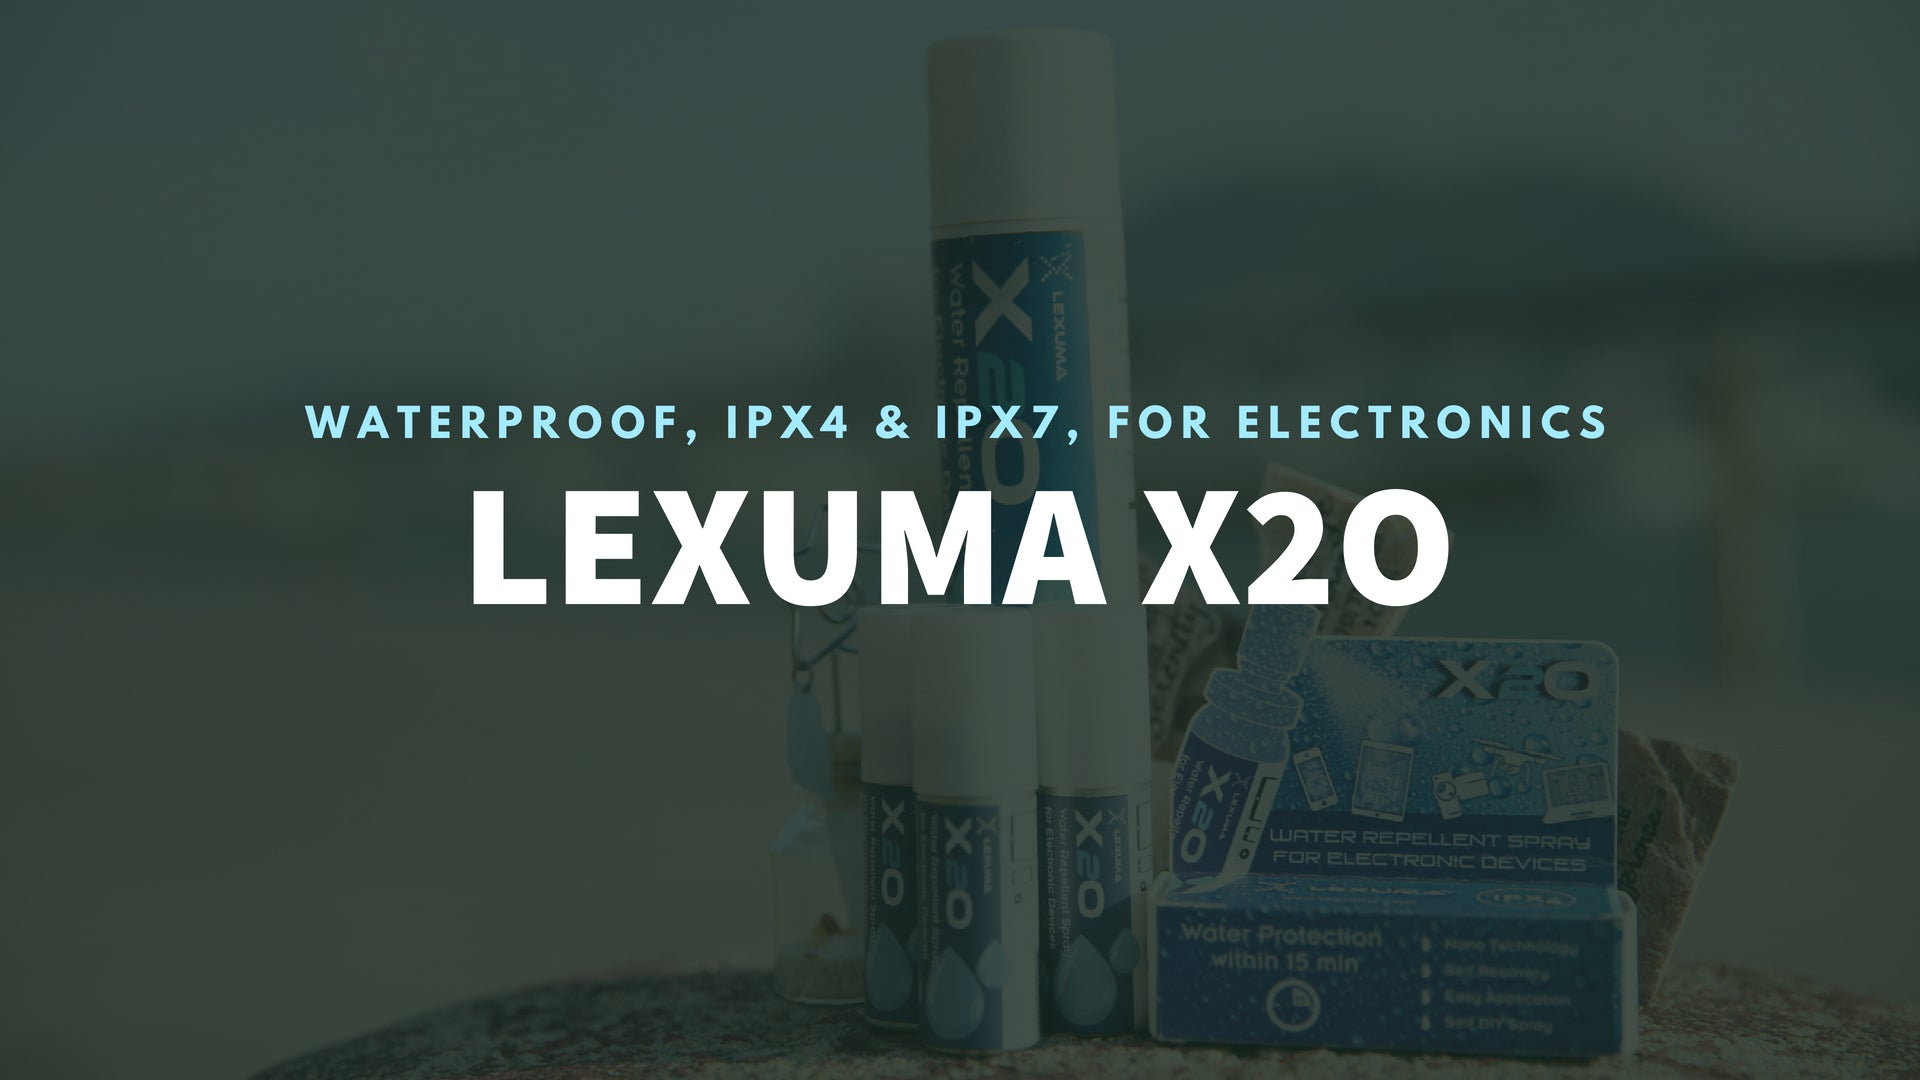 Lexuma 辣數碼防水鍍膜噴霧 X2O Water Repellent coating Spray with IPX4 and IPX7 water protection